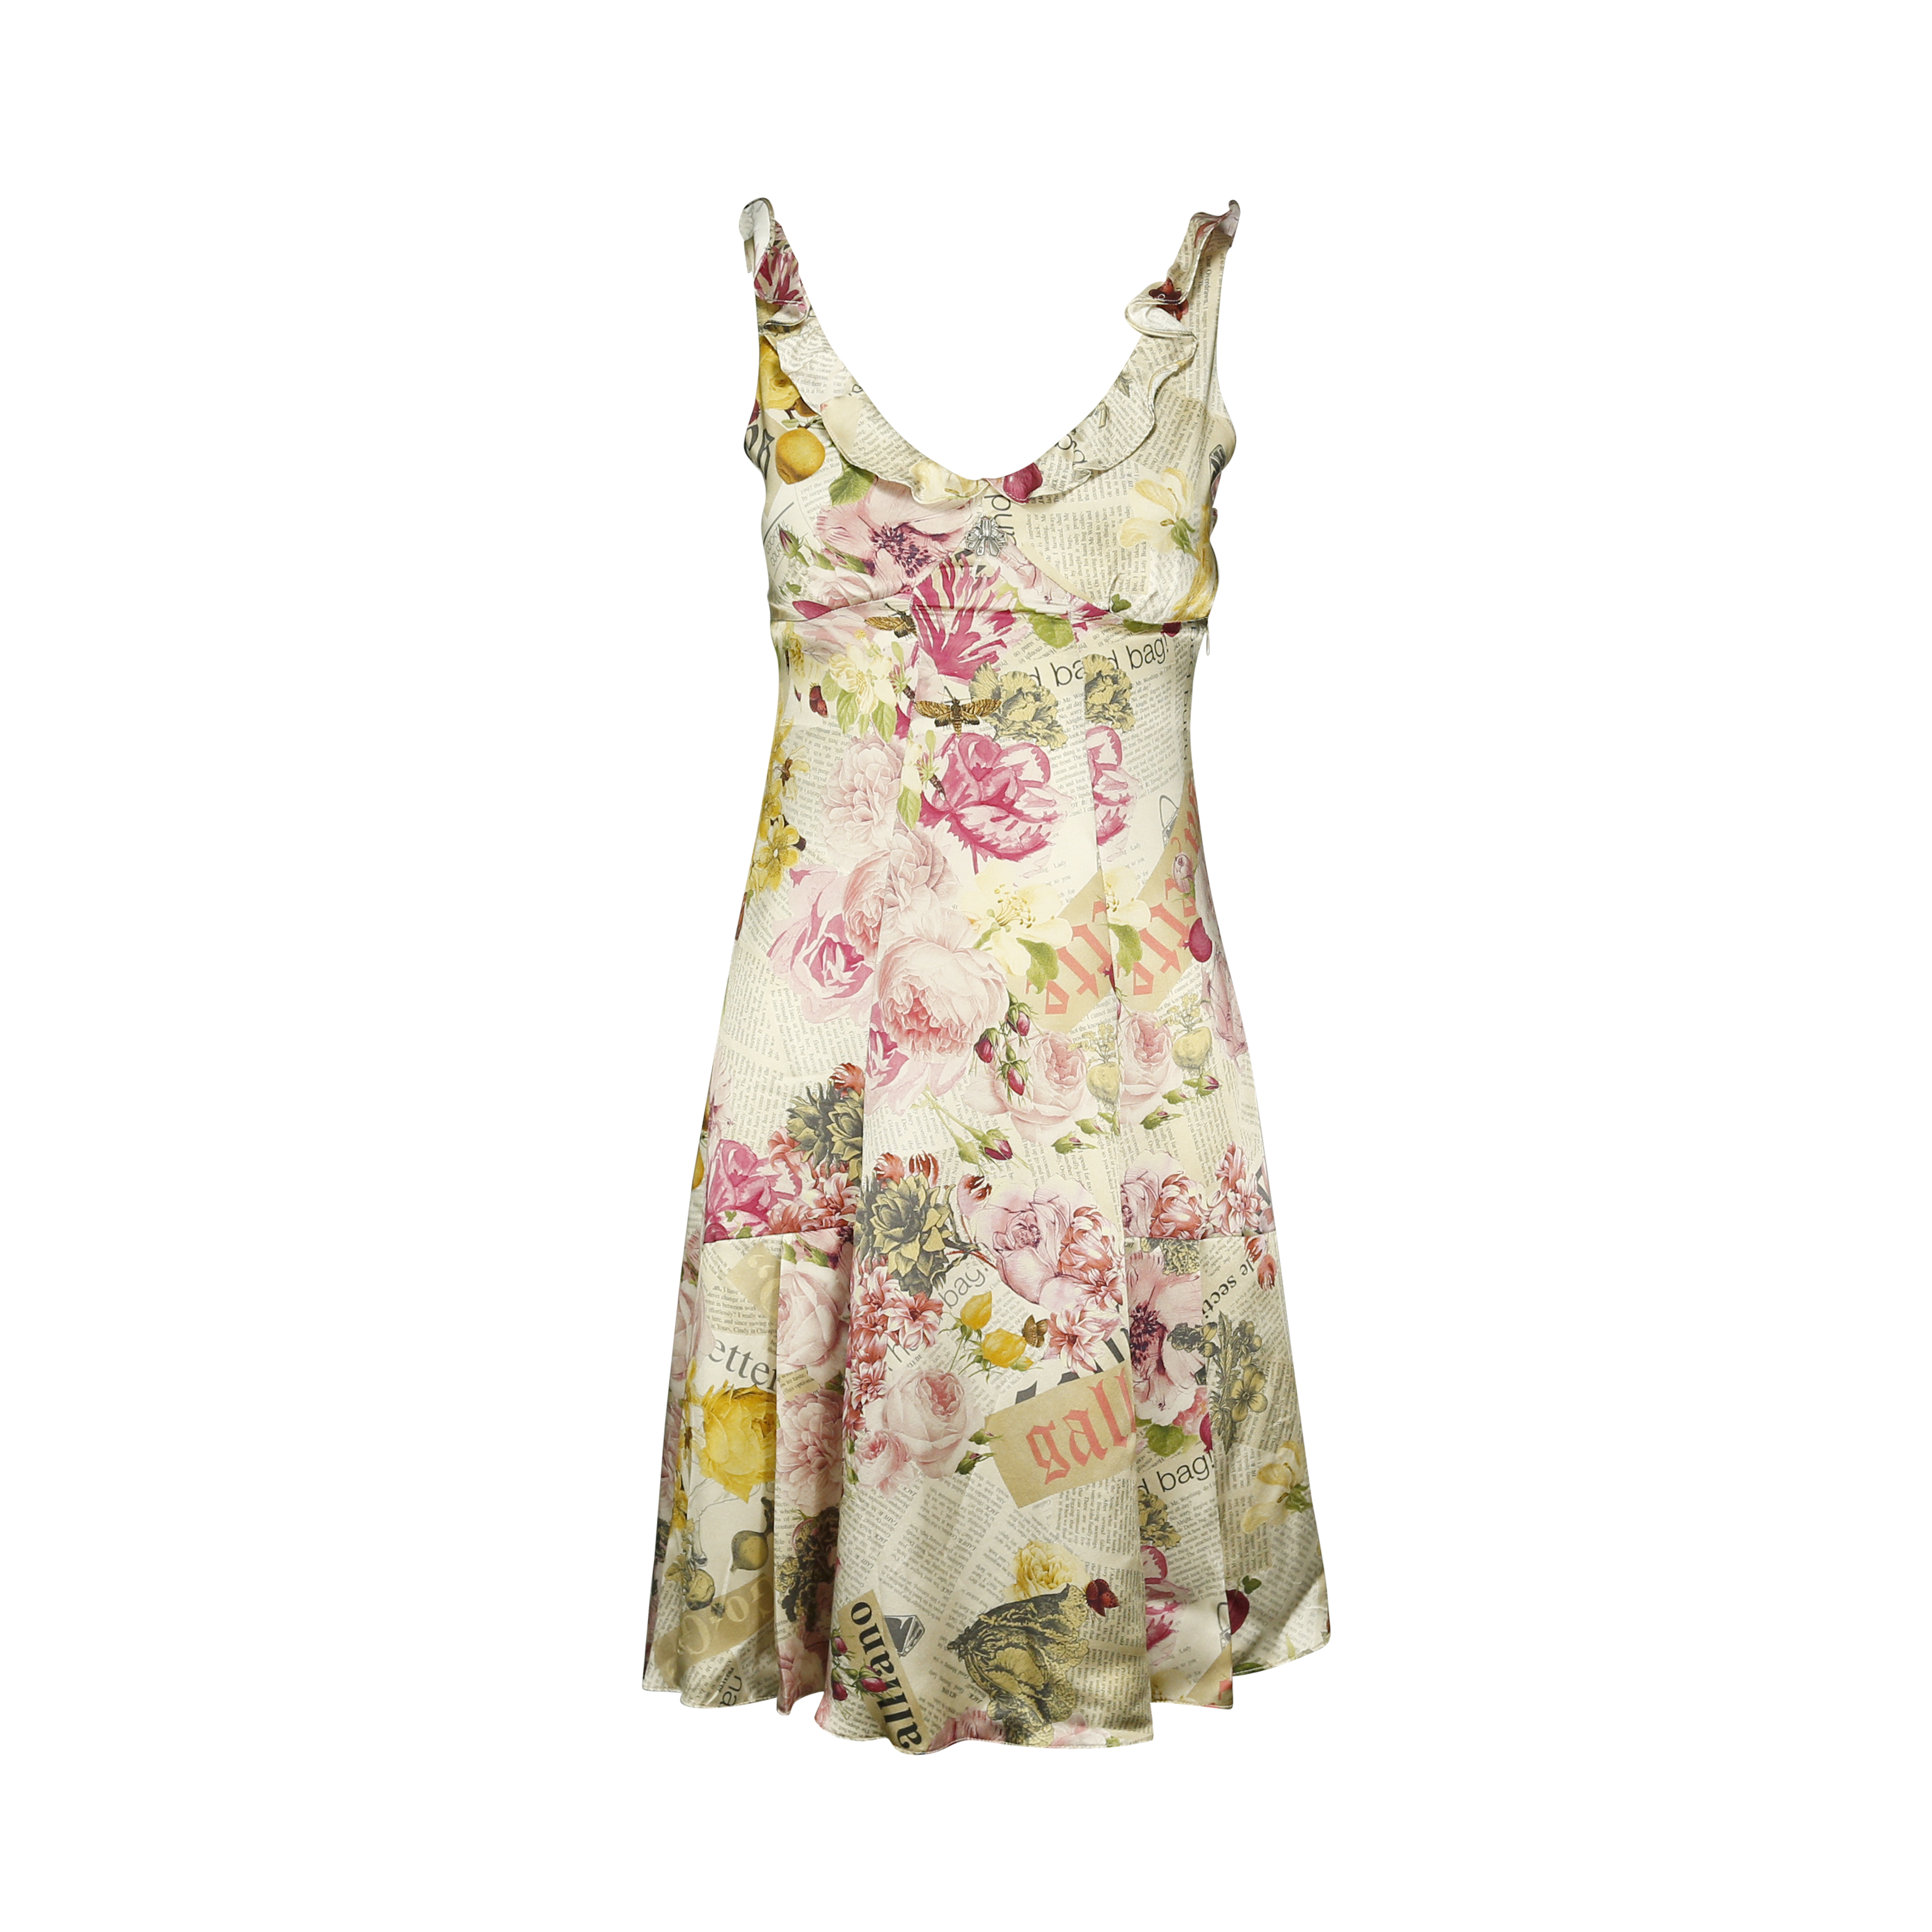 ab6a4bcb Authentic Second Hand John Galliano Newspaper Print Floral Dress  (PSS-175-00011) | THE FIFTH COLLECTION